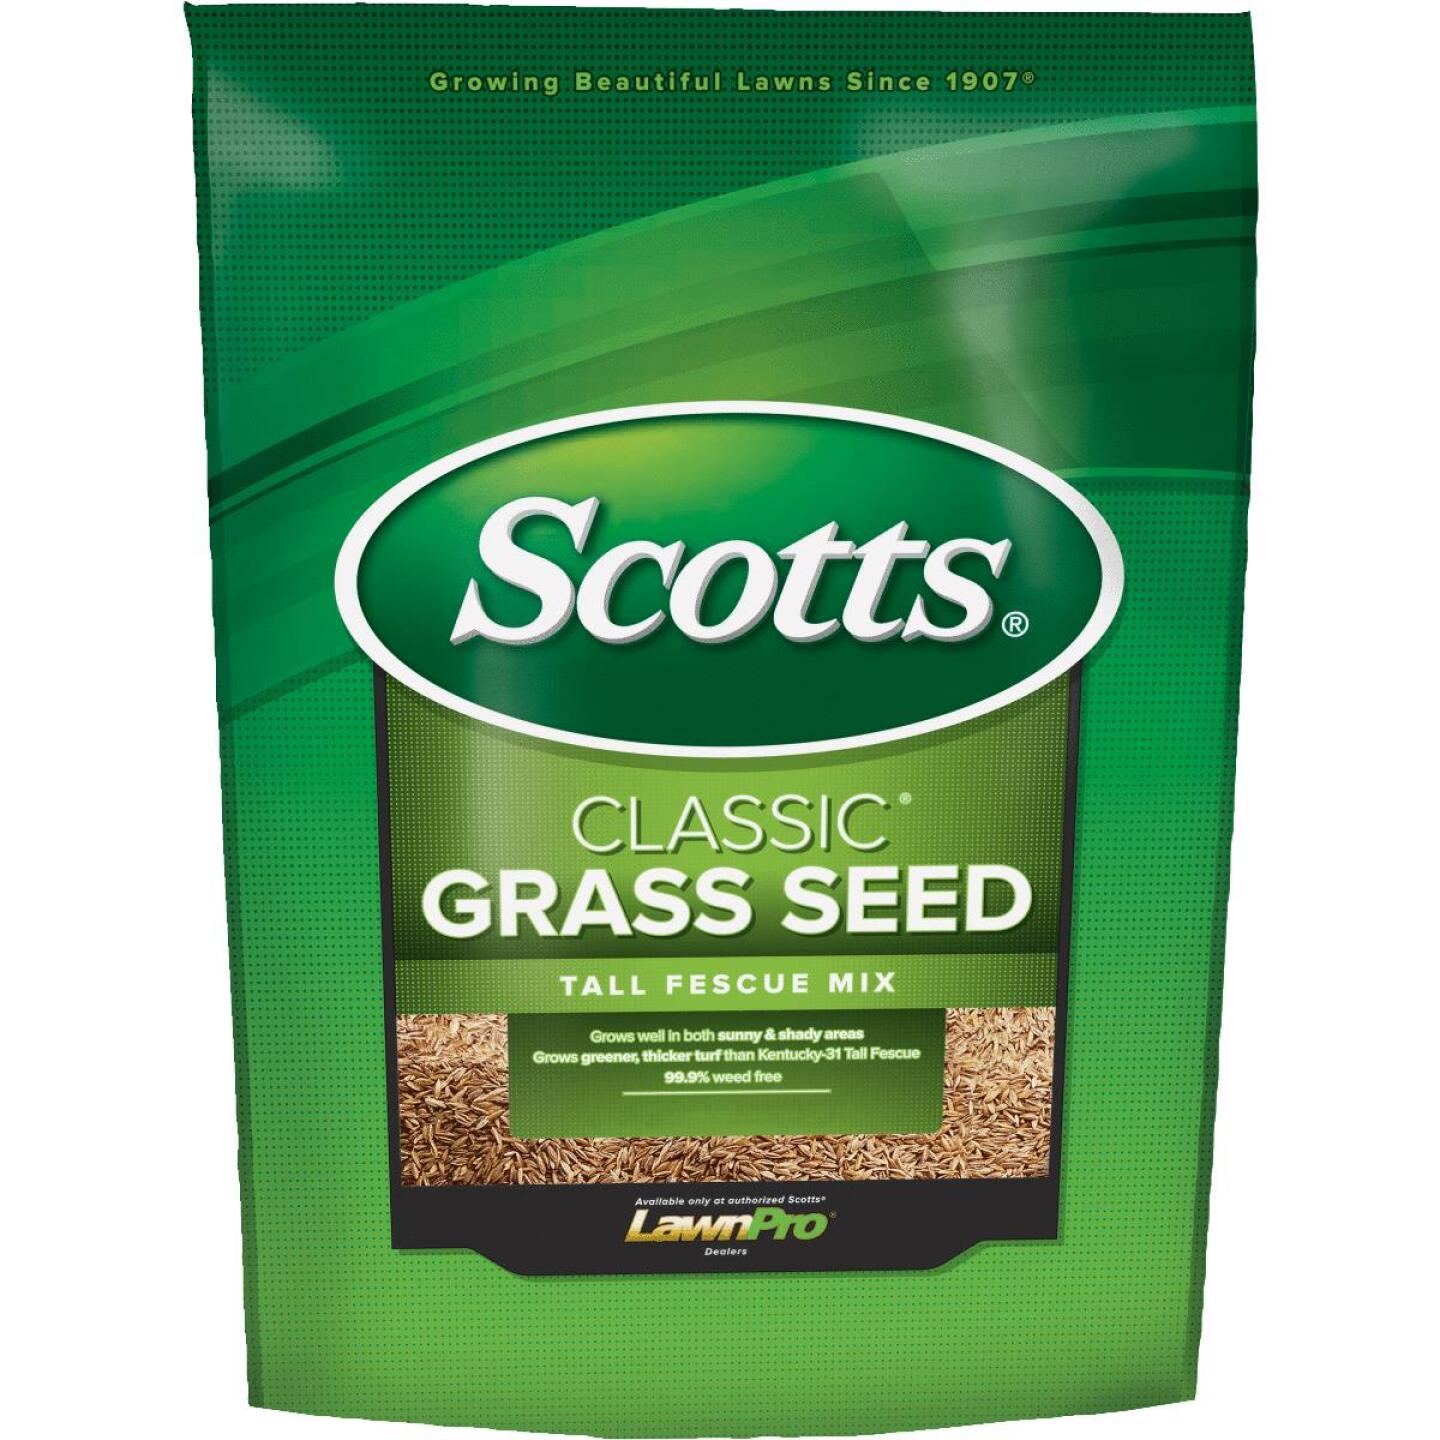 Scotts Classic 7 Lb. 1550 Sq. Ft. Coverage Tall Fescue Grass Seed Image 1